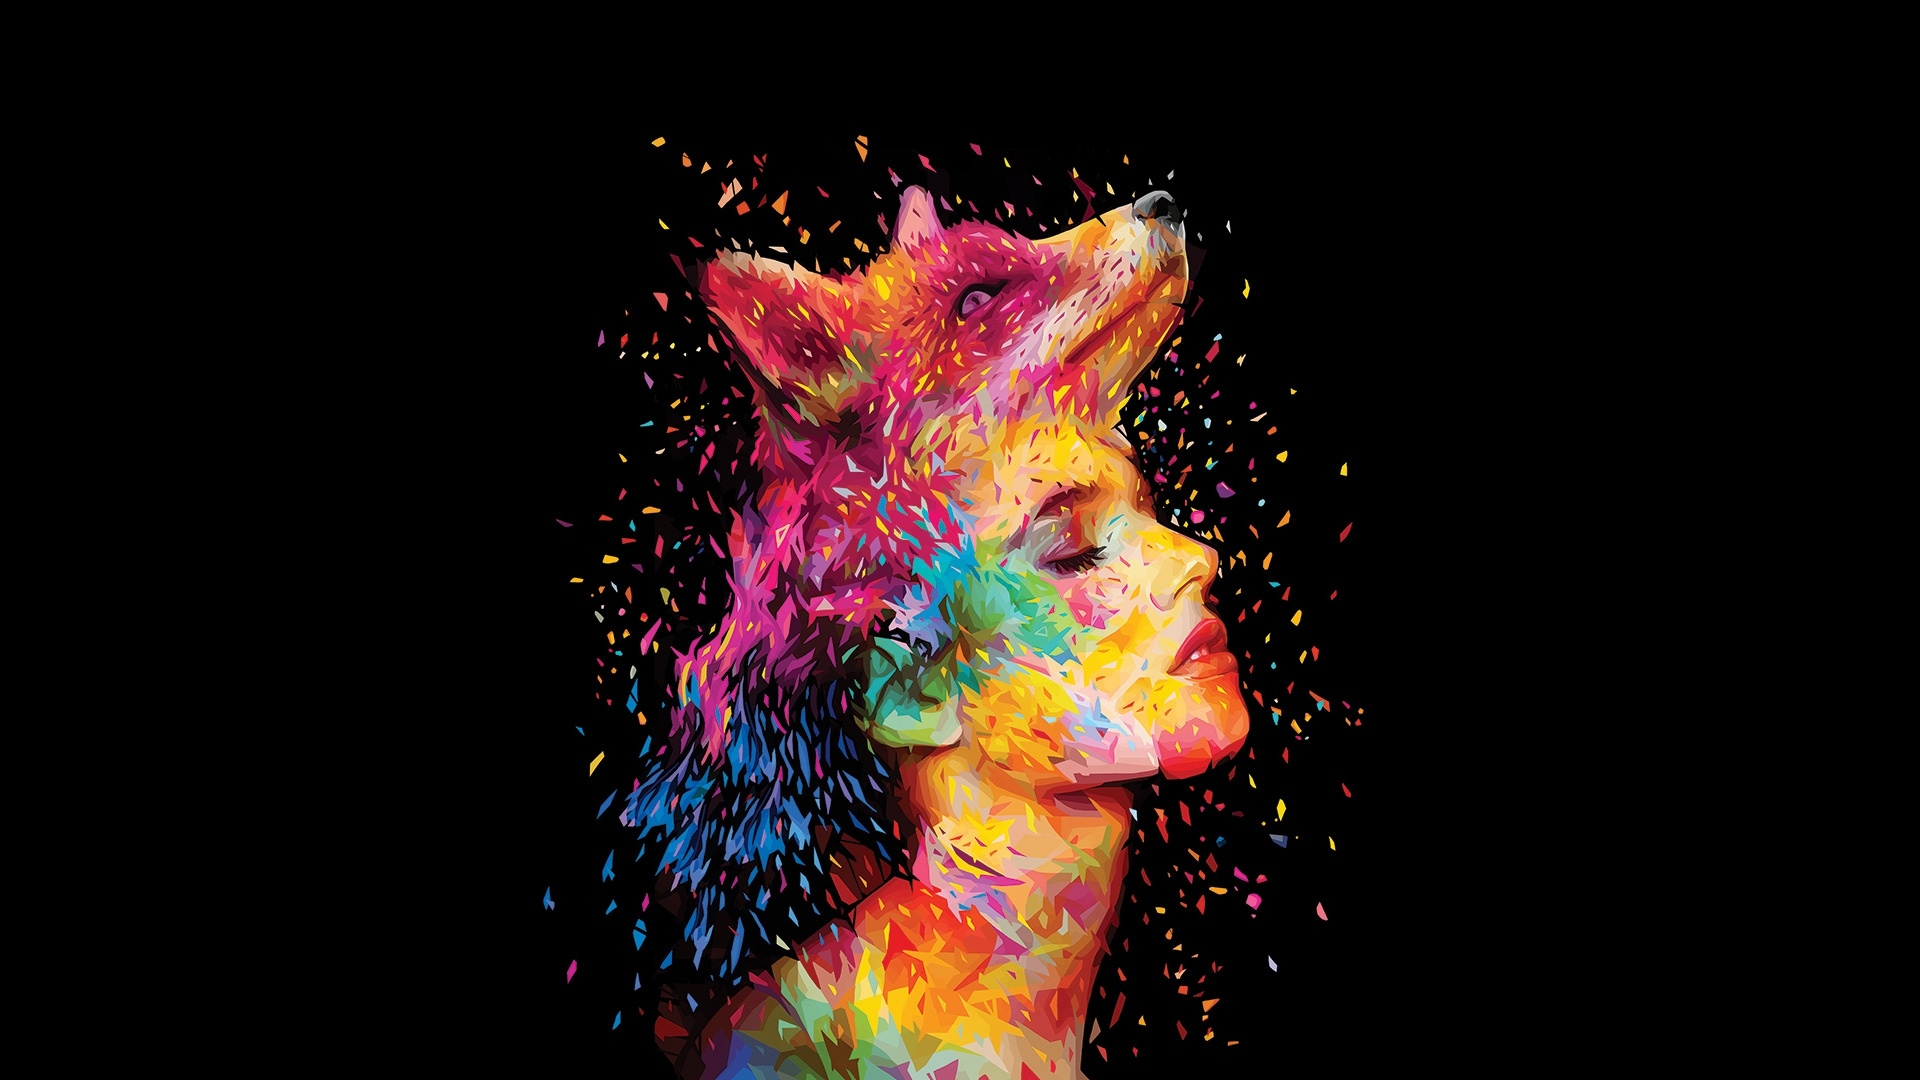 1920x1080 Abstracto Full Hd 1920x1080: Colorful Closed Eyes Wolf Head Women Face, Full HD Wallpaper